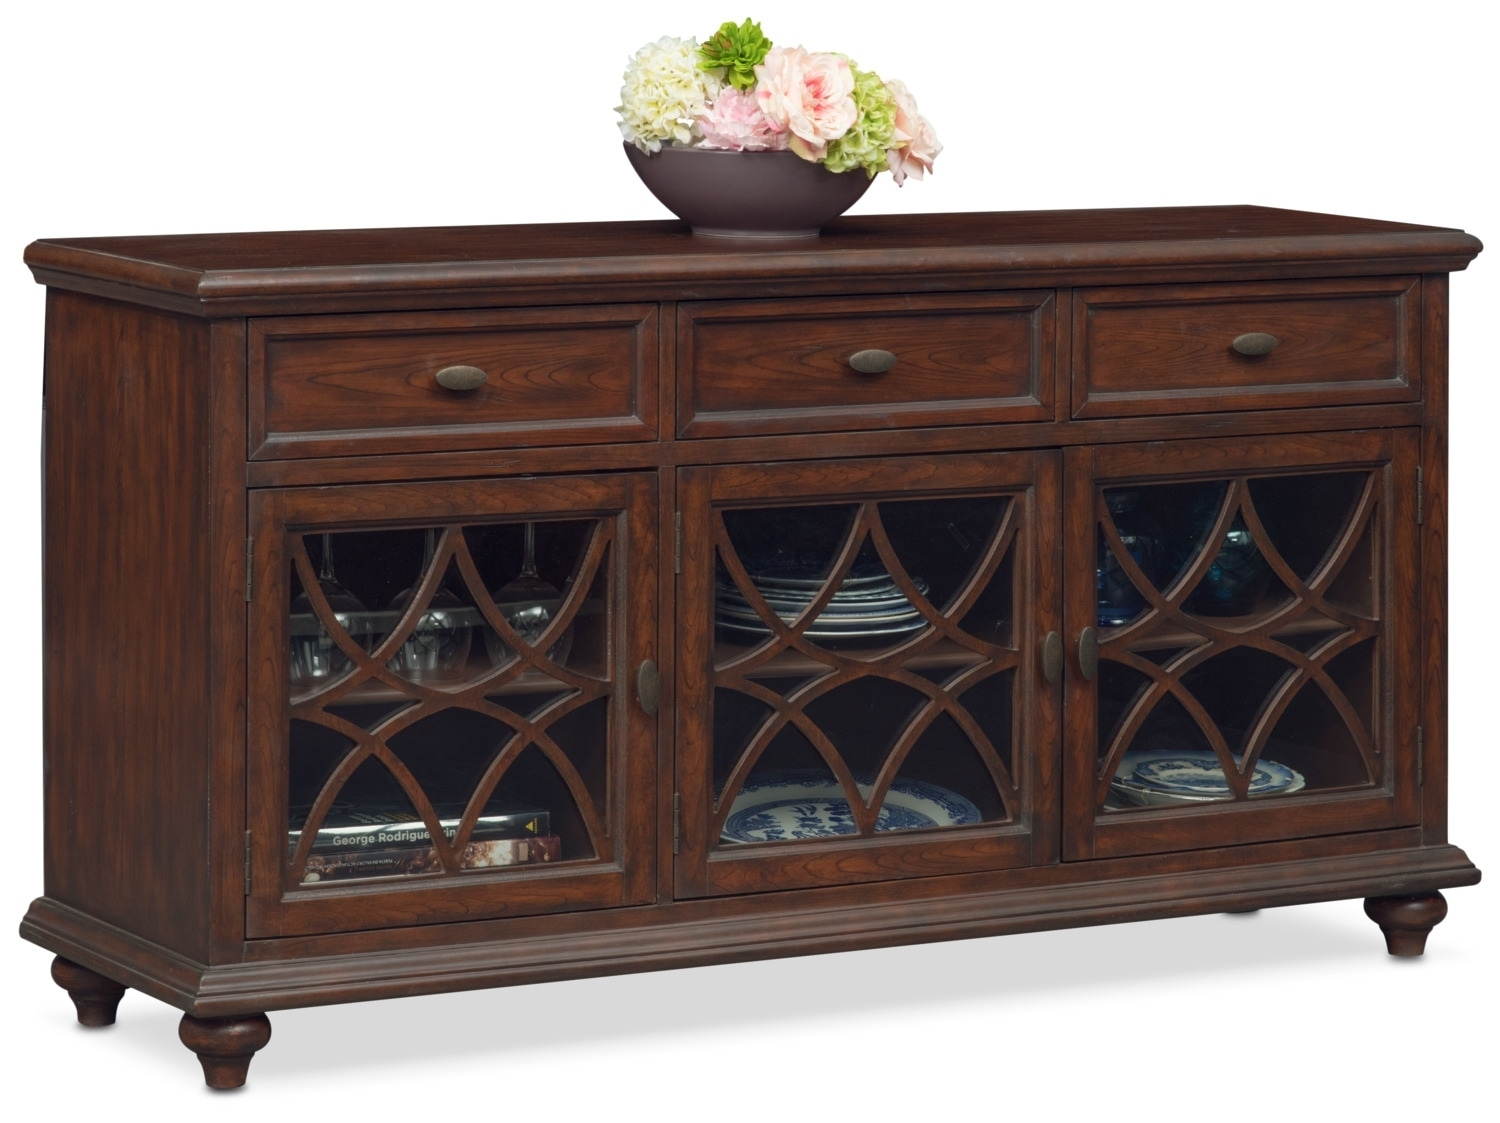 Rivoli Sideboard – Brown | Value City Furniture And Mattresses For Most Up To Date Diamond Circle Sideboards (#15 of 20)